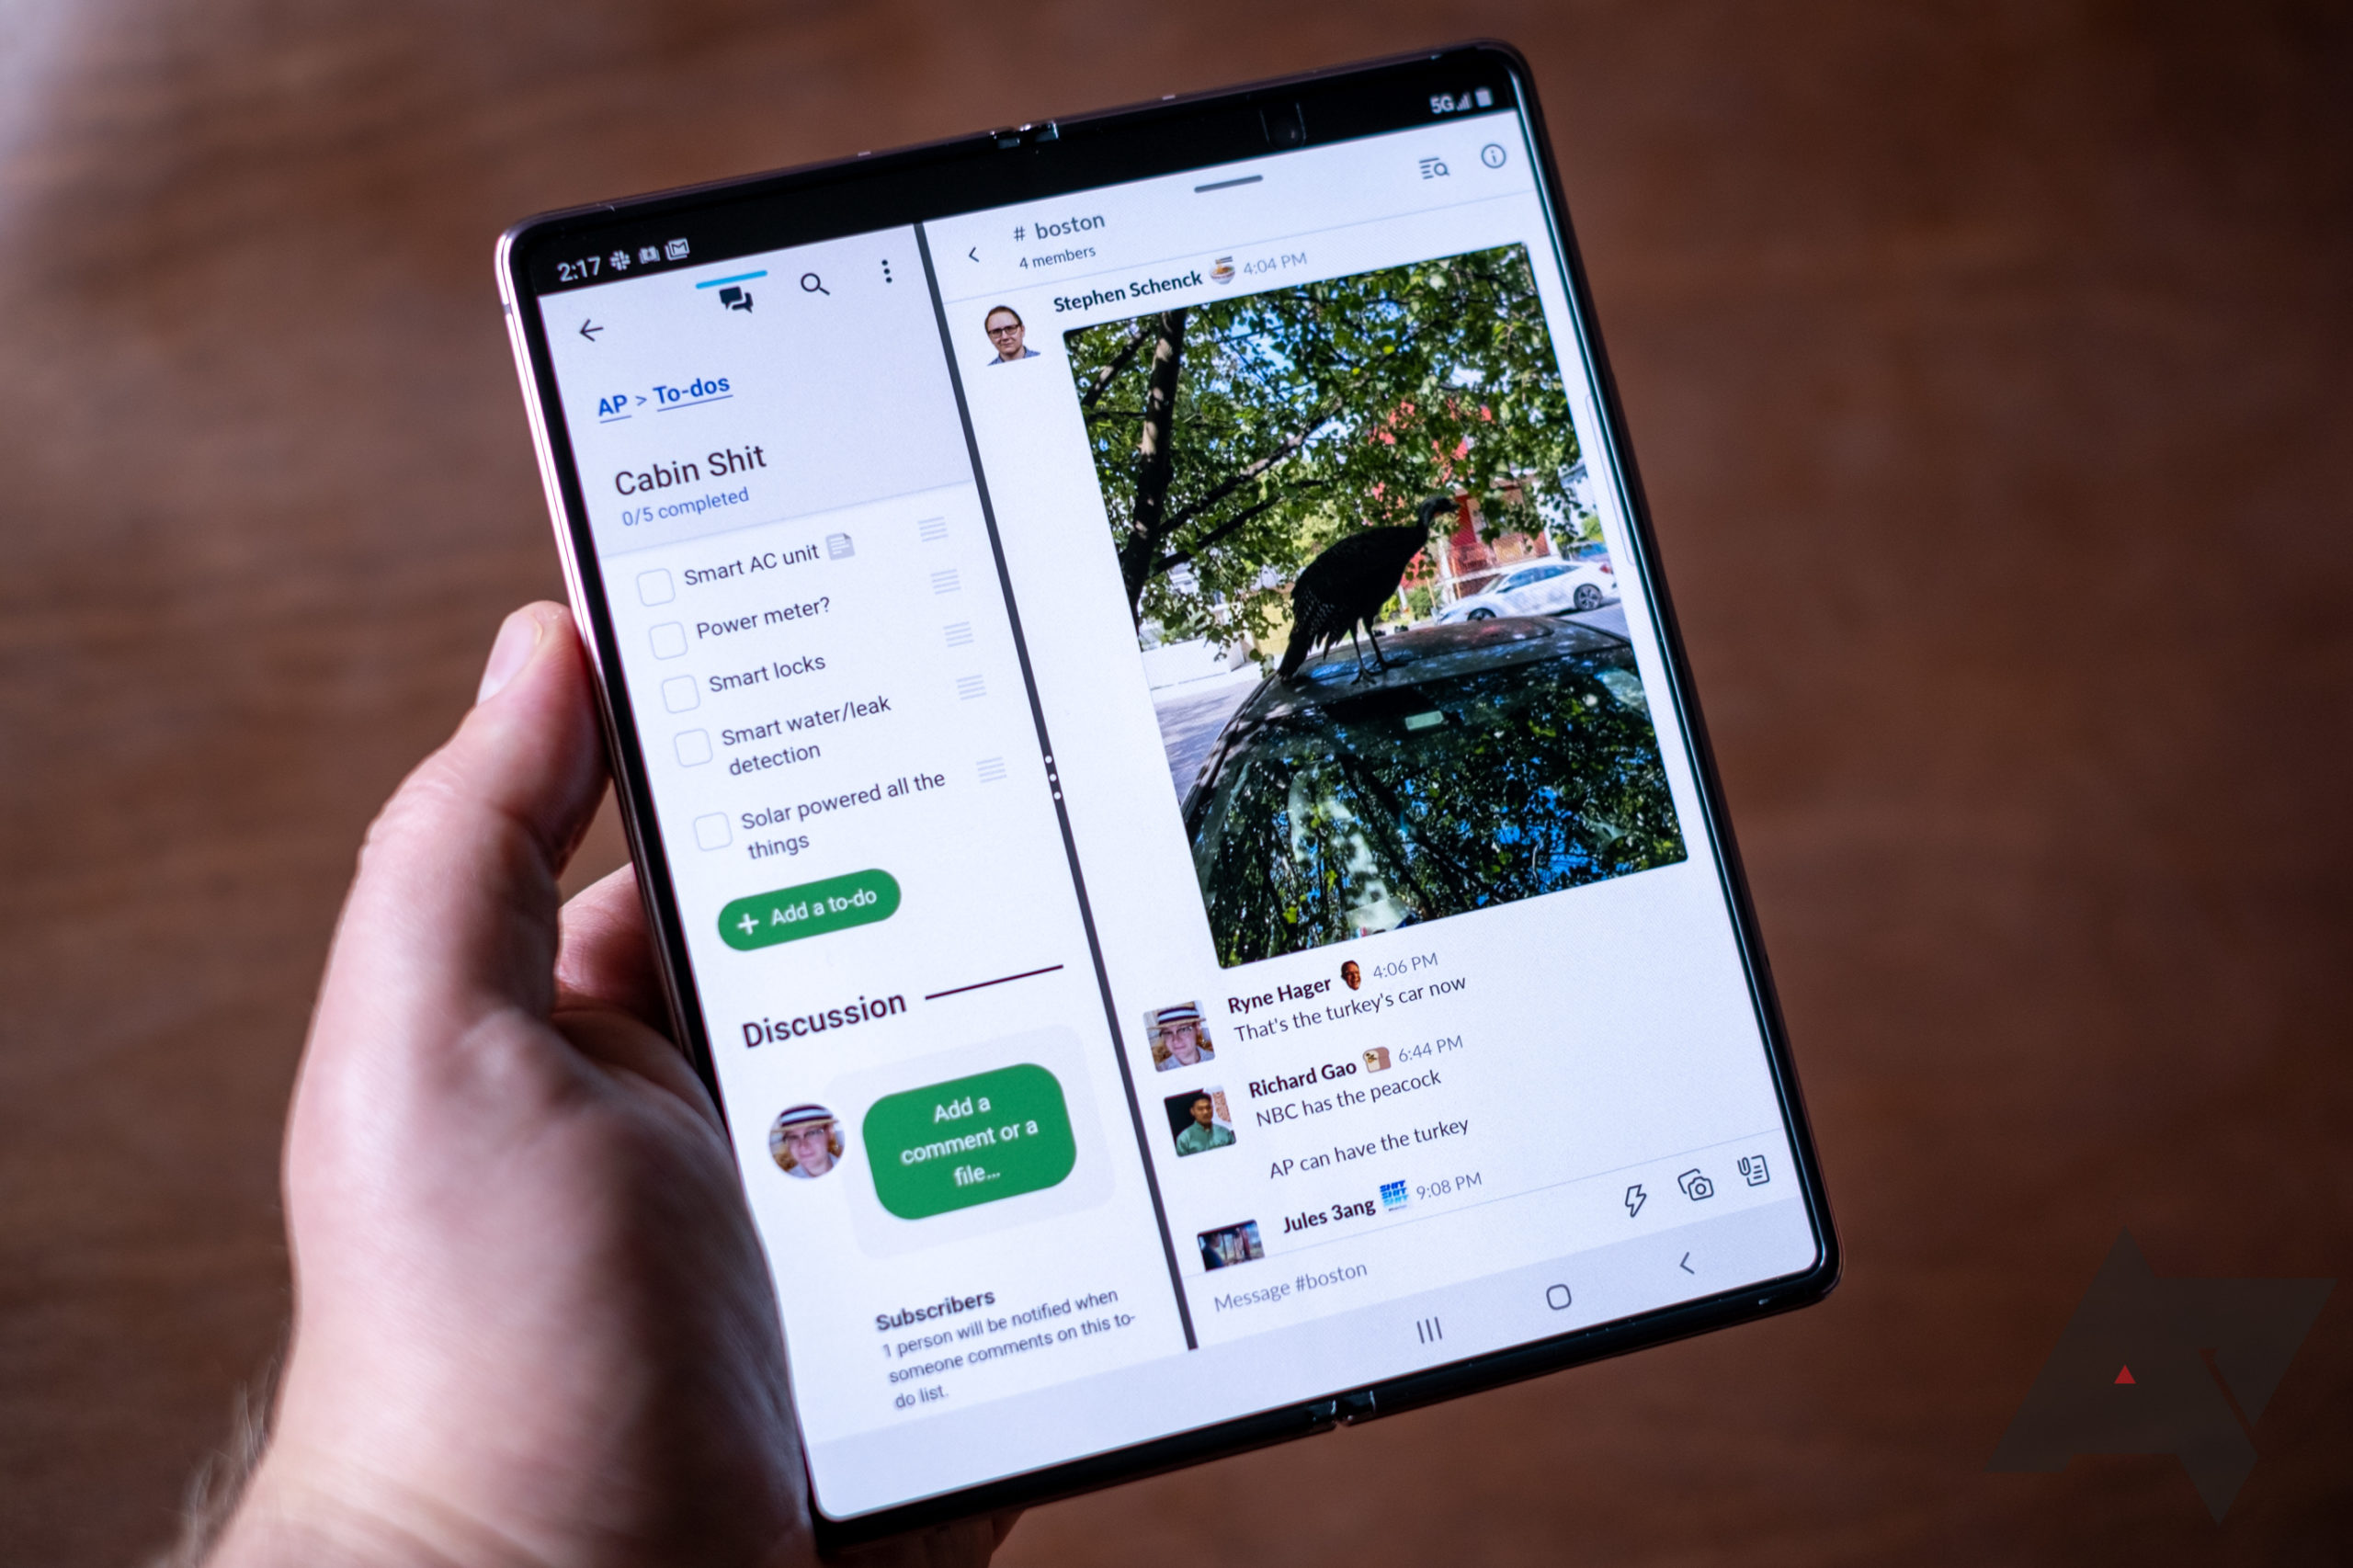 Samsung Galaxy Z Fold2 gets improved multitasking in One UI 3.1 update - Android Police